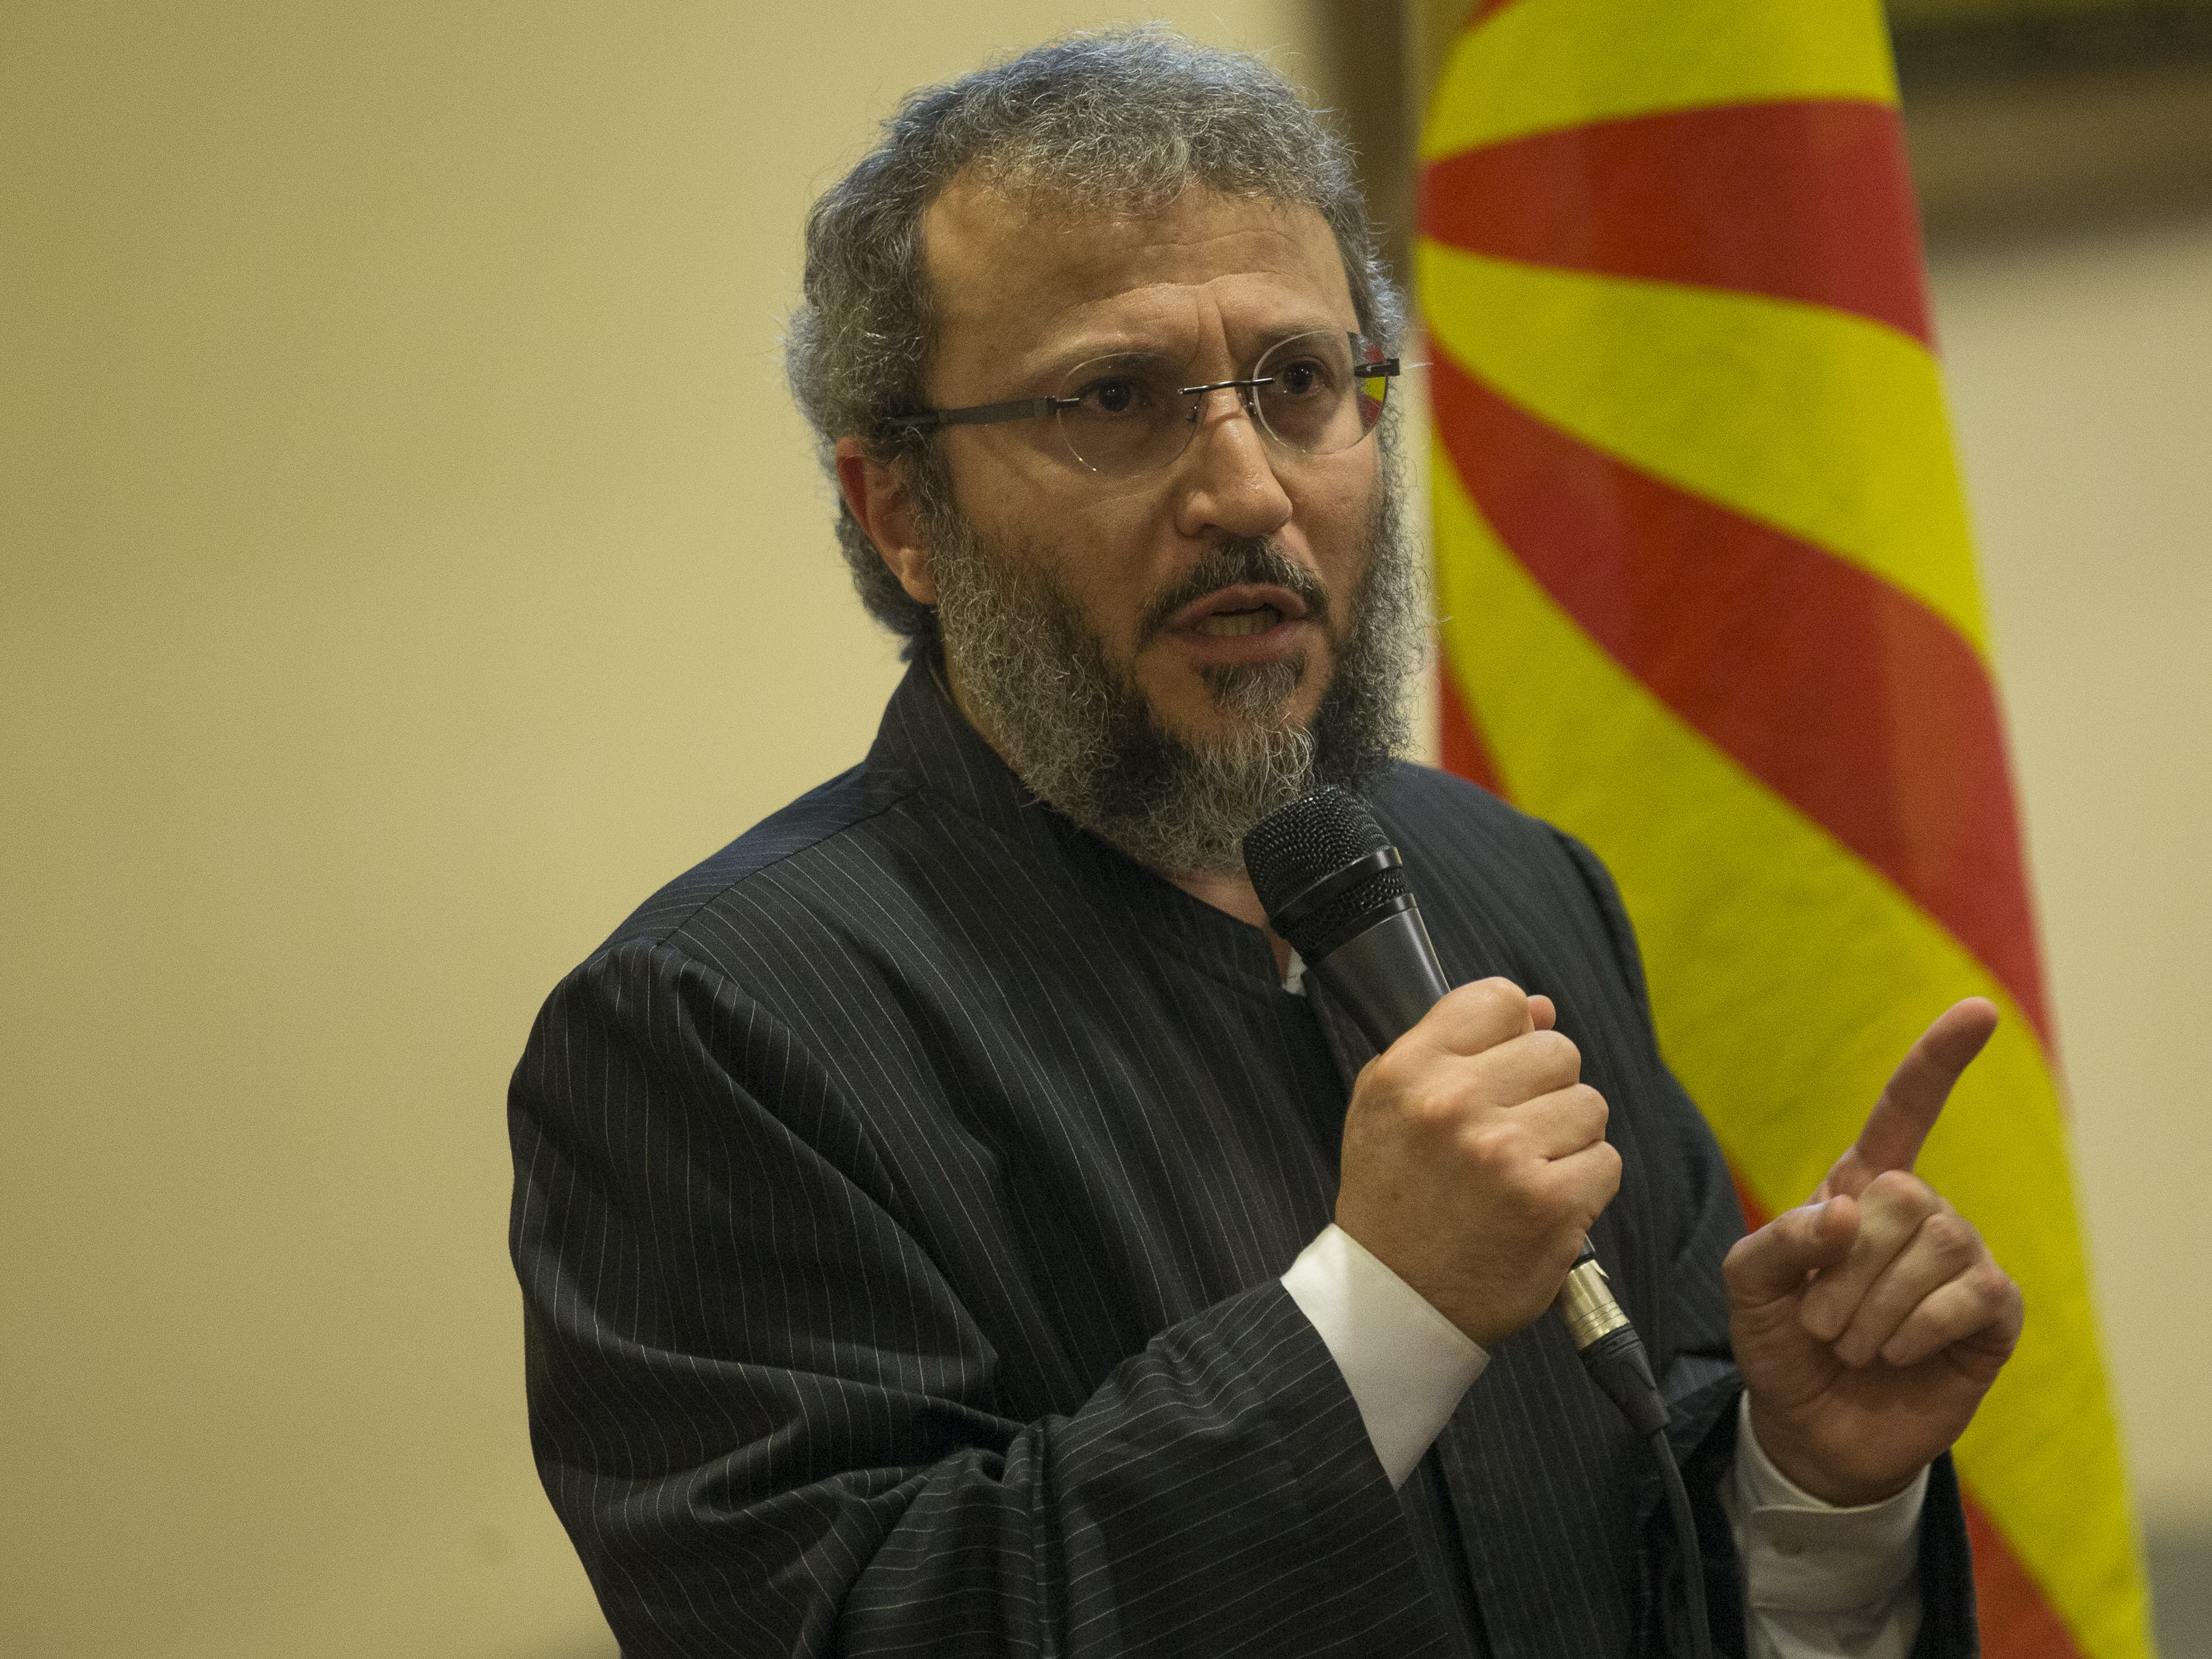 Imaam Anas Hlayhel, of Masjid As Salaam, speaks at a vigil held at the Islamic Center of Northeast Valley in Scottsdale, Ariz., on Sunday, March 17, 2019, in memory of the Christchurch New Zealand shooting victims.